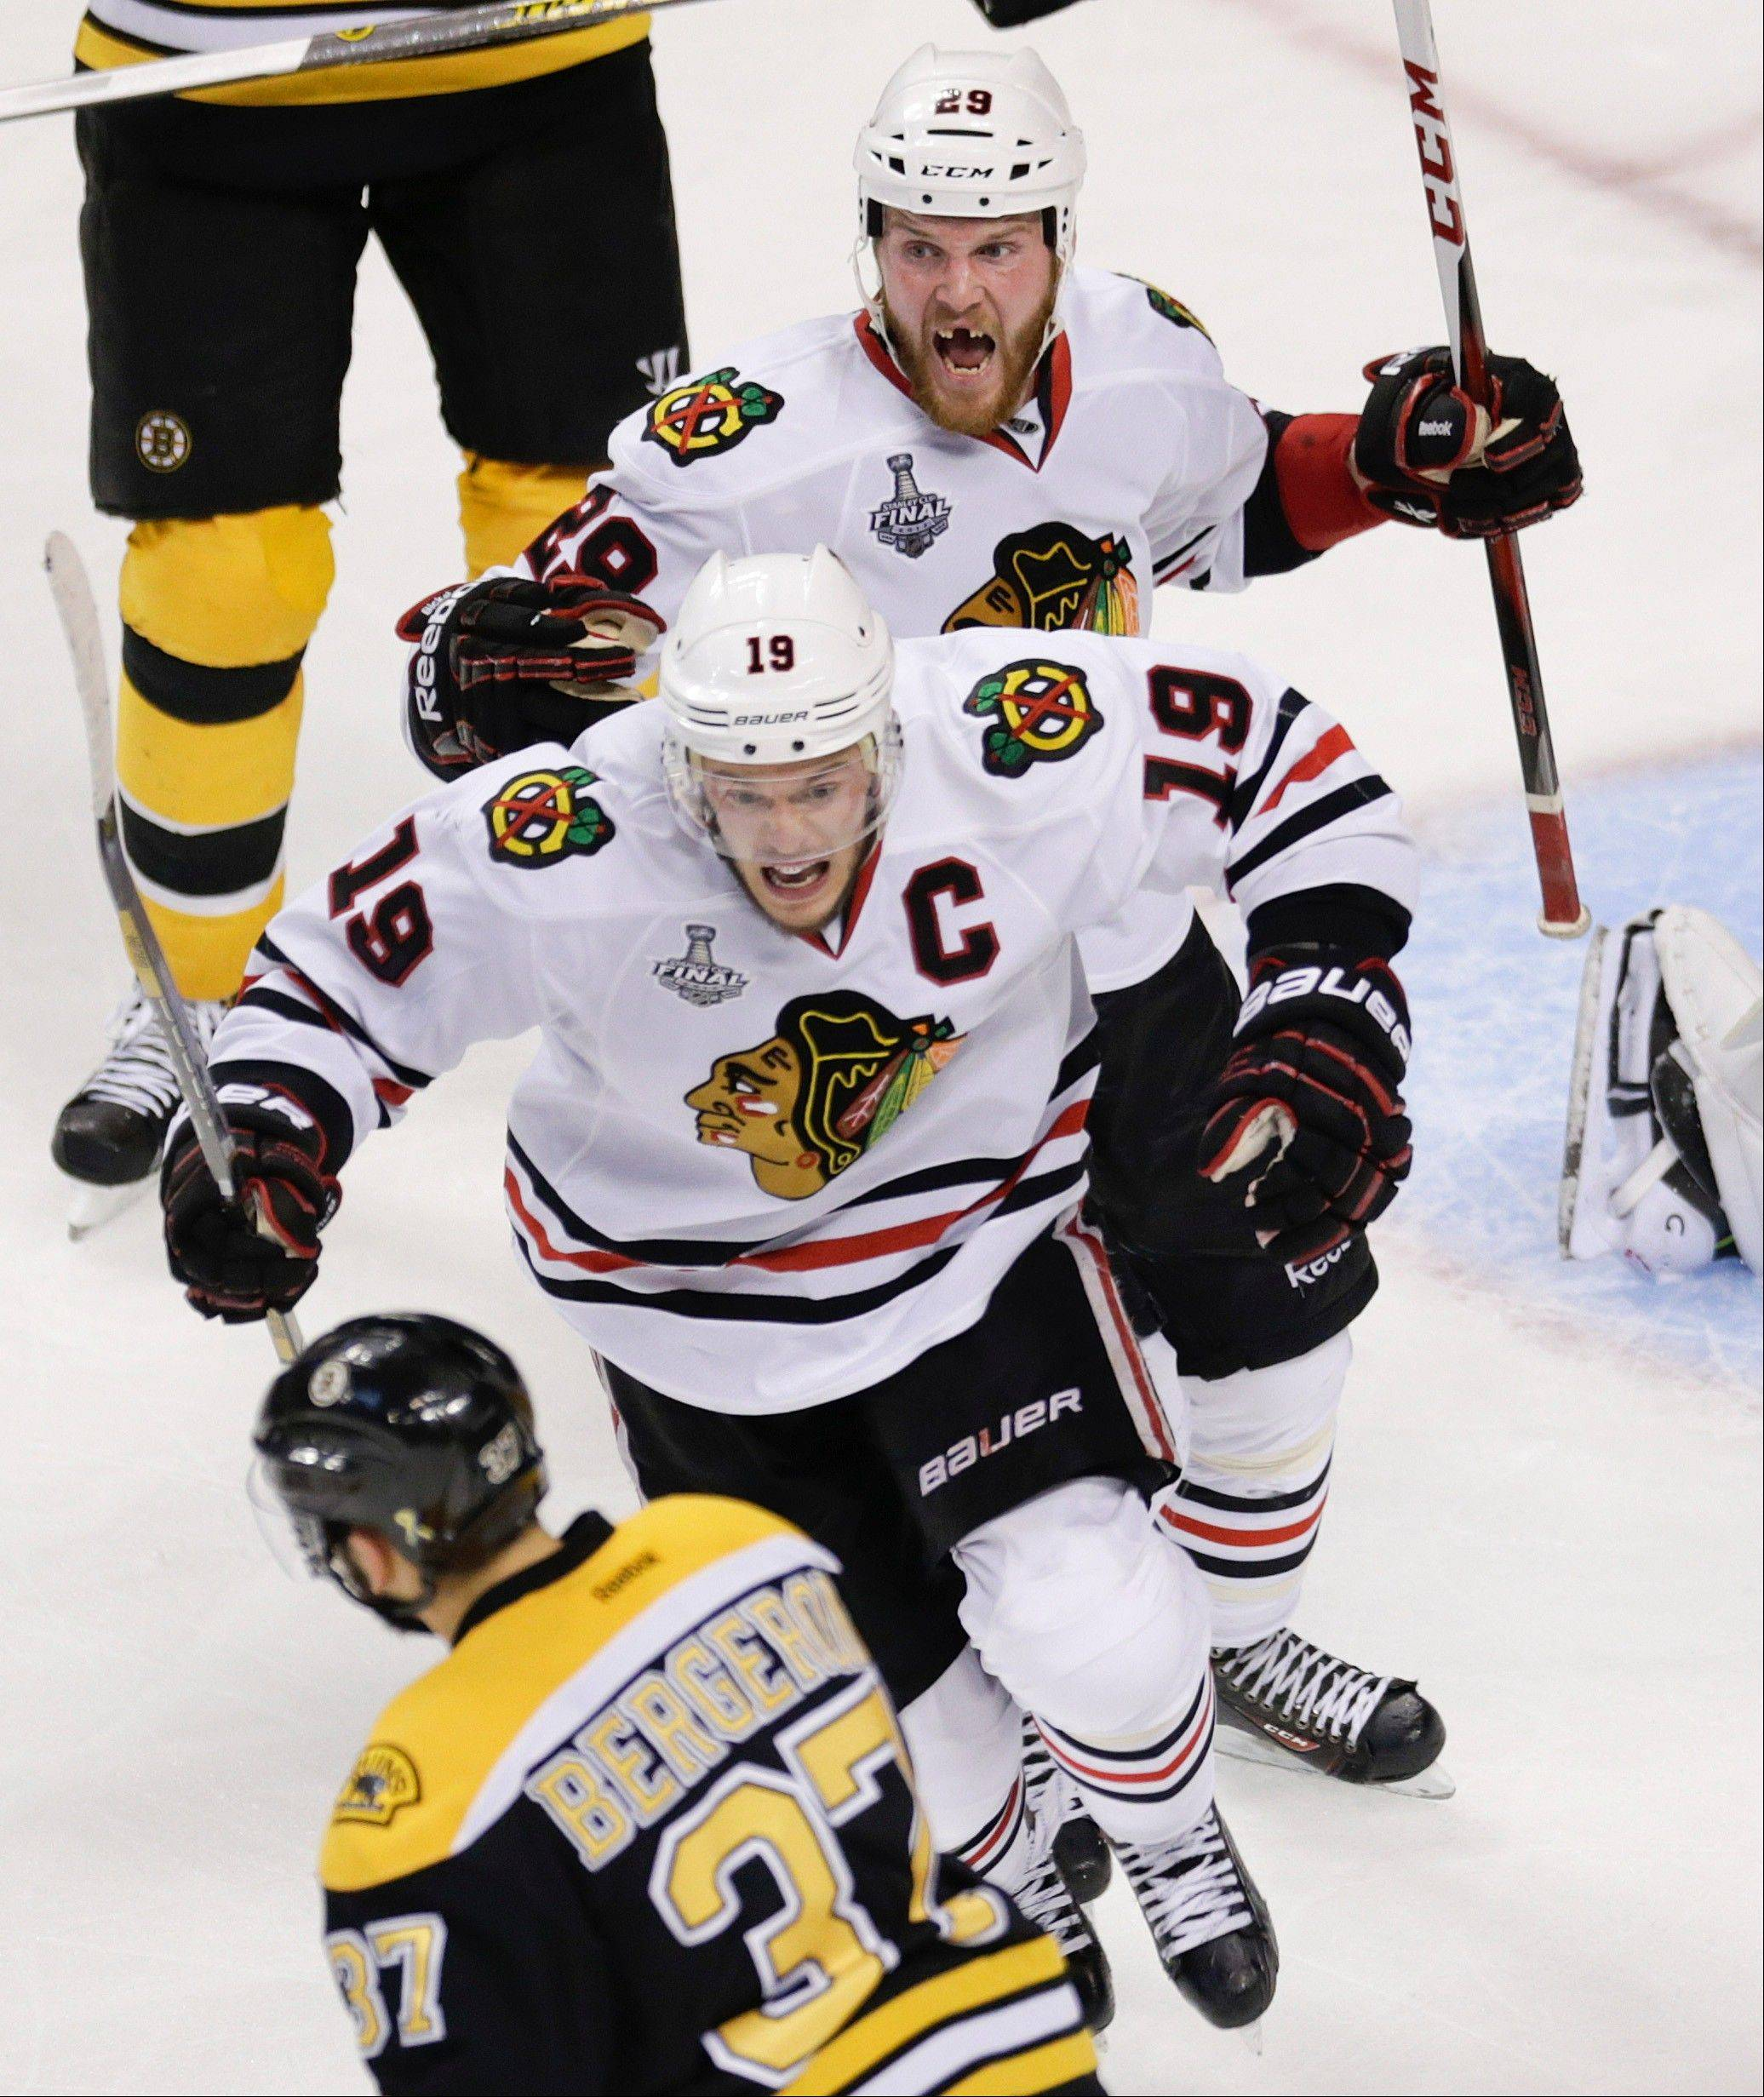 Chicago Blackhawks left wing Bryan Bickell (29) and center Jonathan Toews (19) celebrate the winning goal by Brent Seabrook, not shown, in front of Boston Bruins center Patrice Bergeron (37) during the first overtime period in Game 4 of the NHL hockey Stanley Cup Finals.